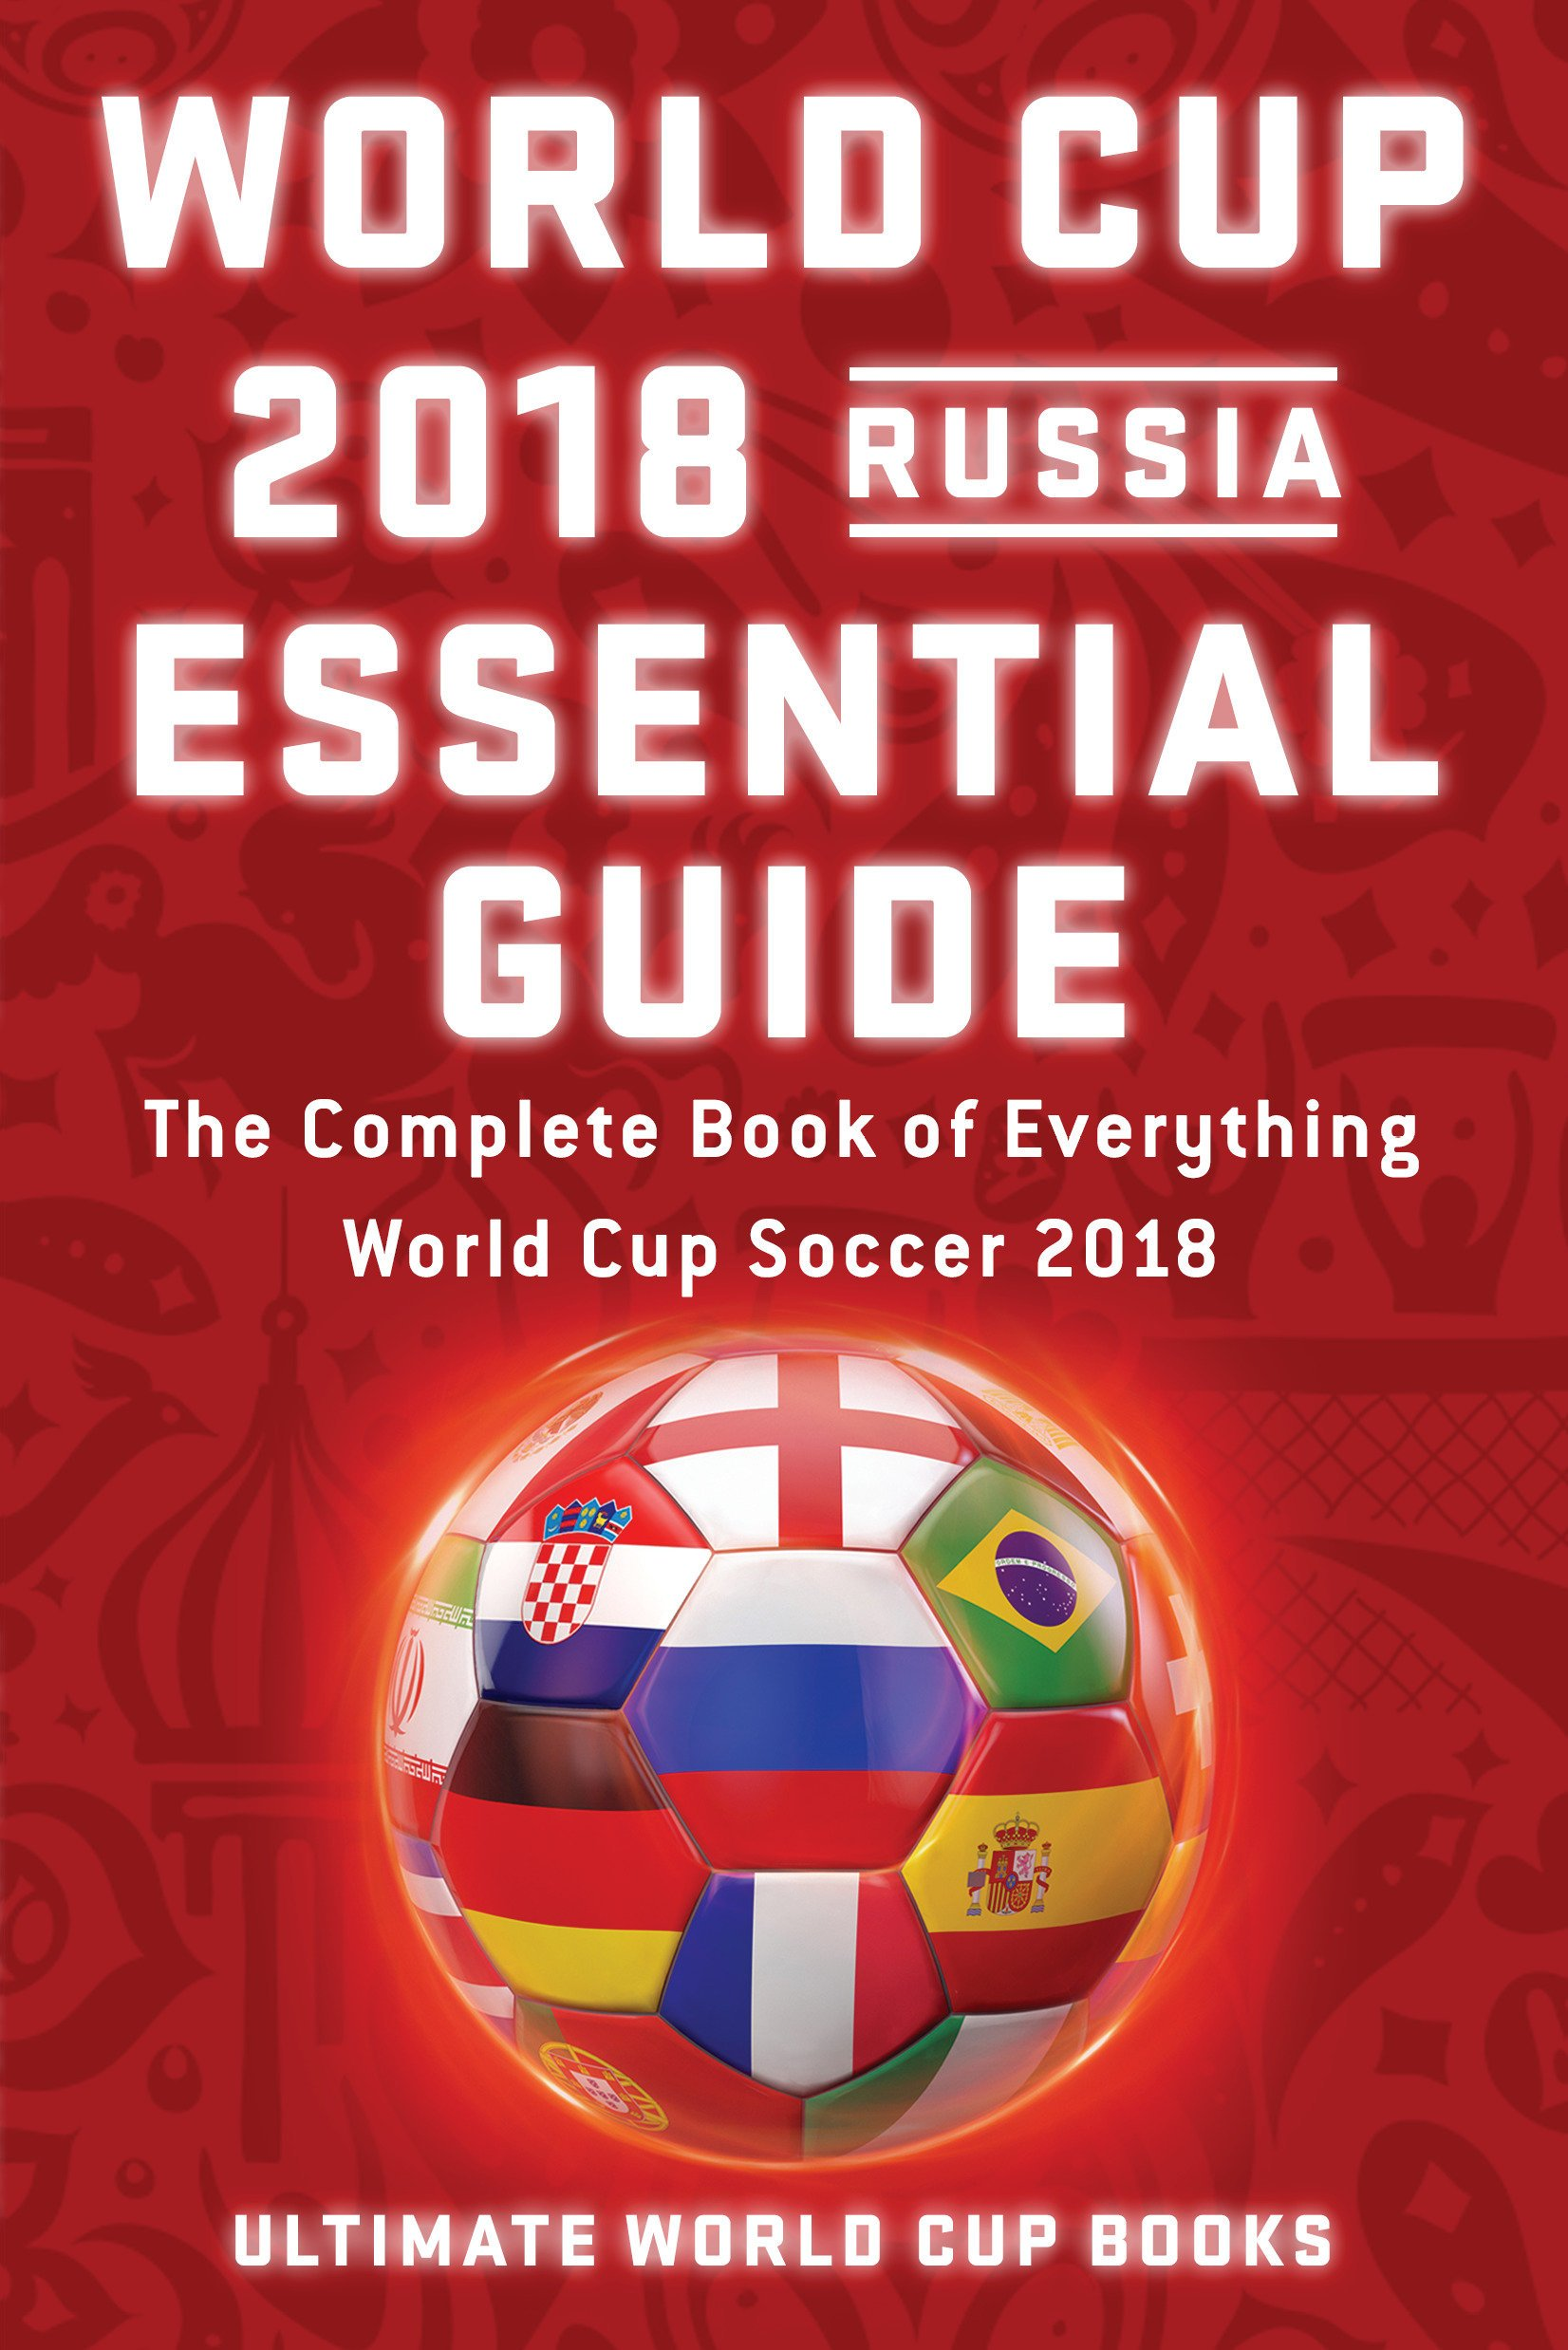 World Cup 20 Russia Essential Guide  ULTIMATE WORLD CUP BOOKS ...